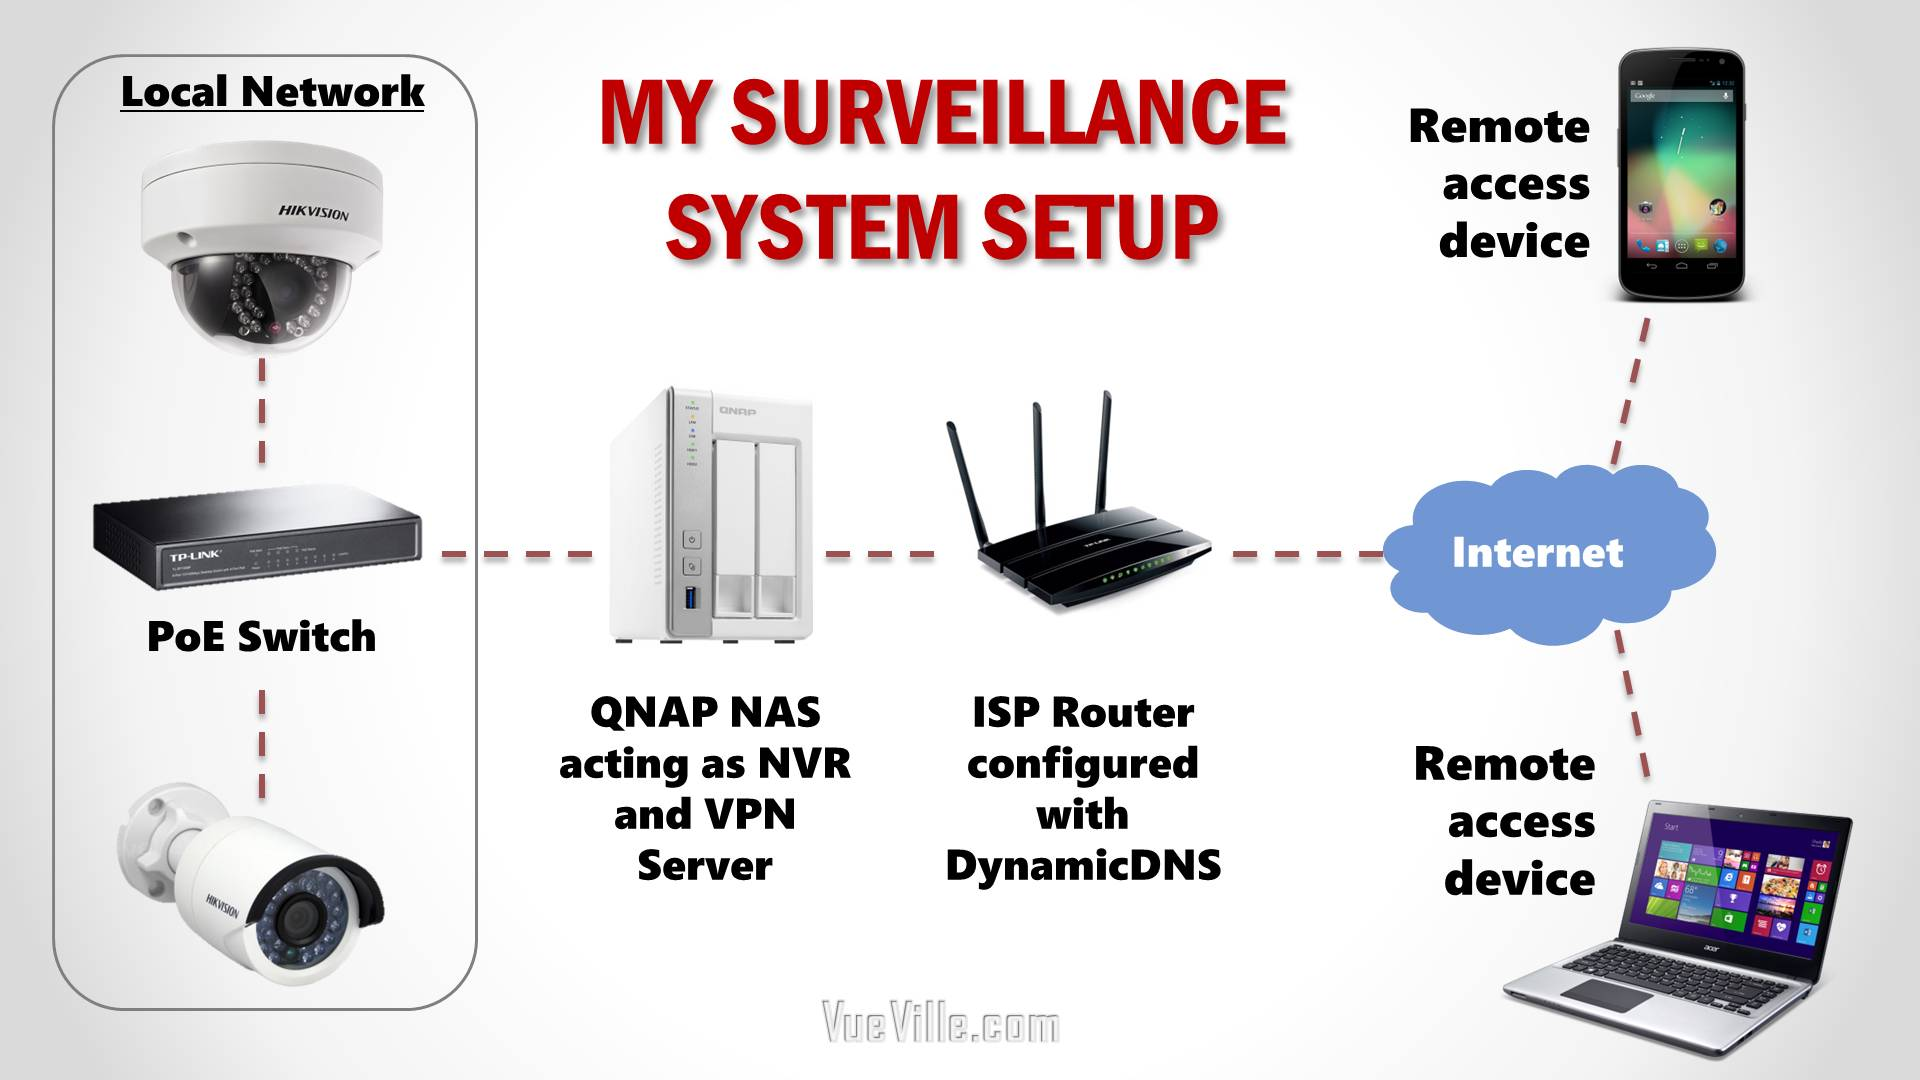 10b570ab4 DIY Home Security System-Network Topology Logical-VueVille.com